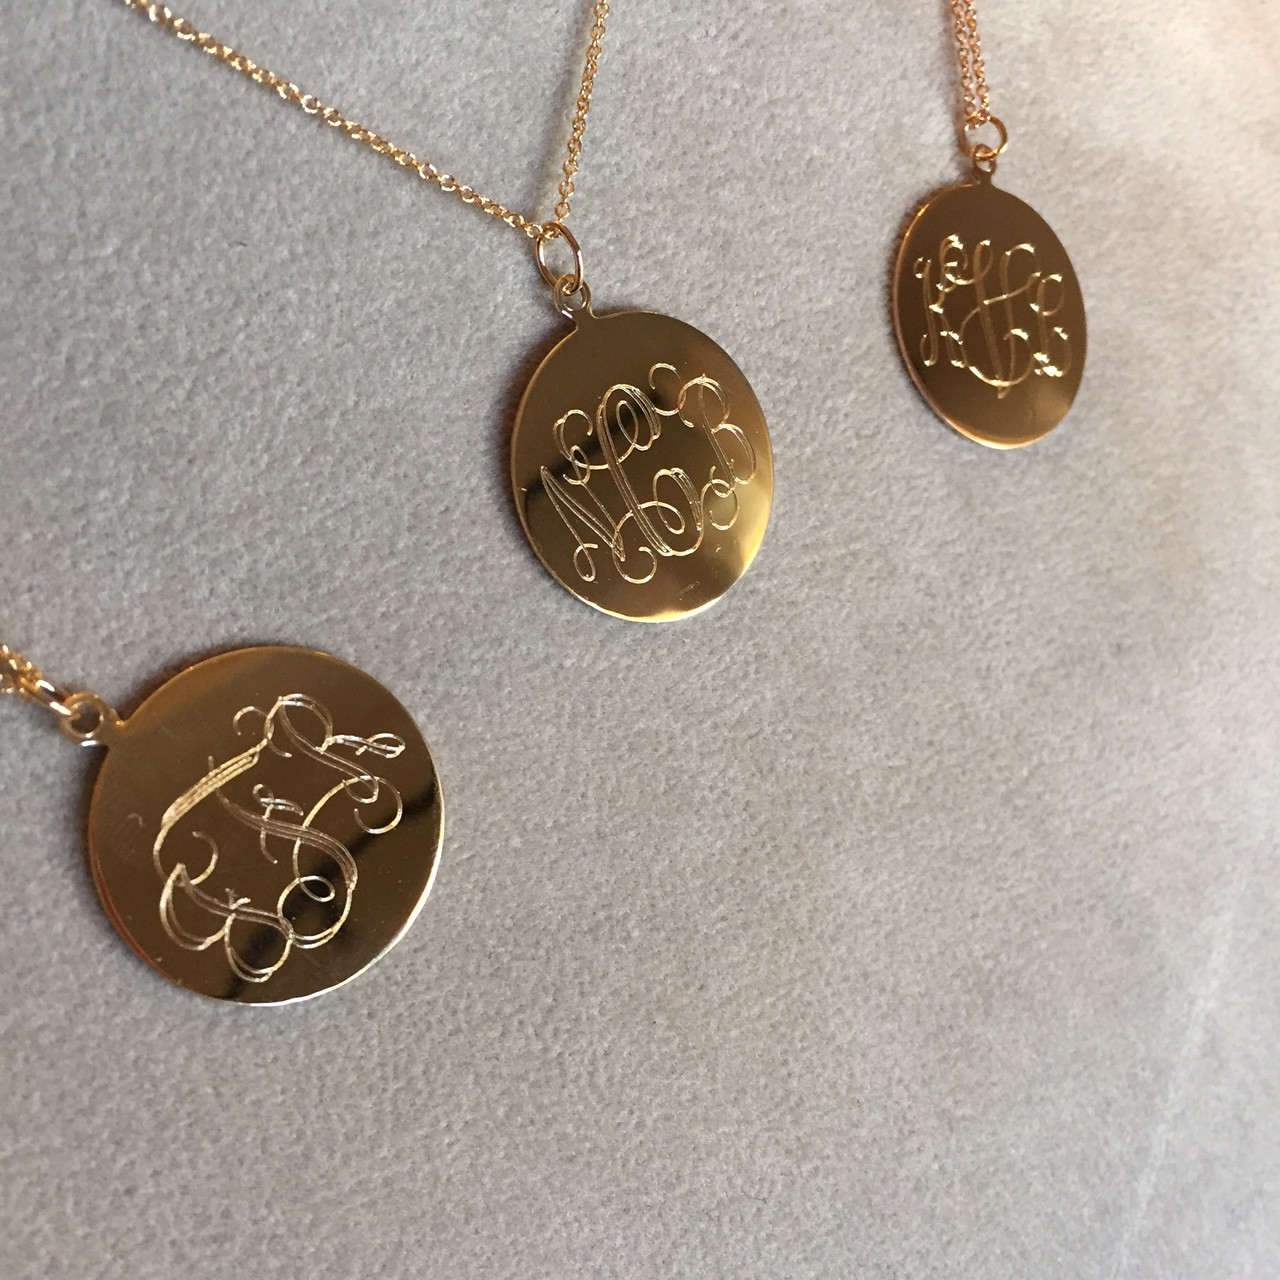 14k Gold Large Disc Pendant Necklace